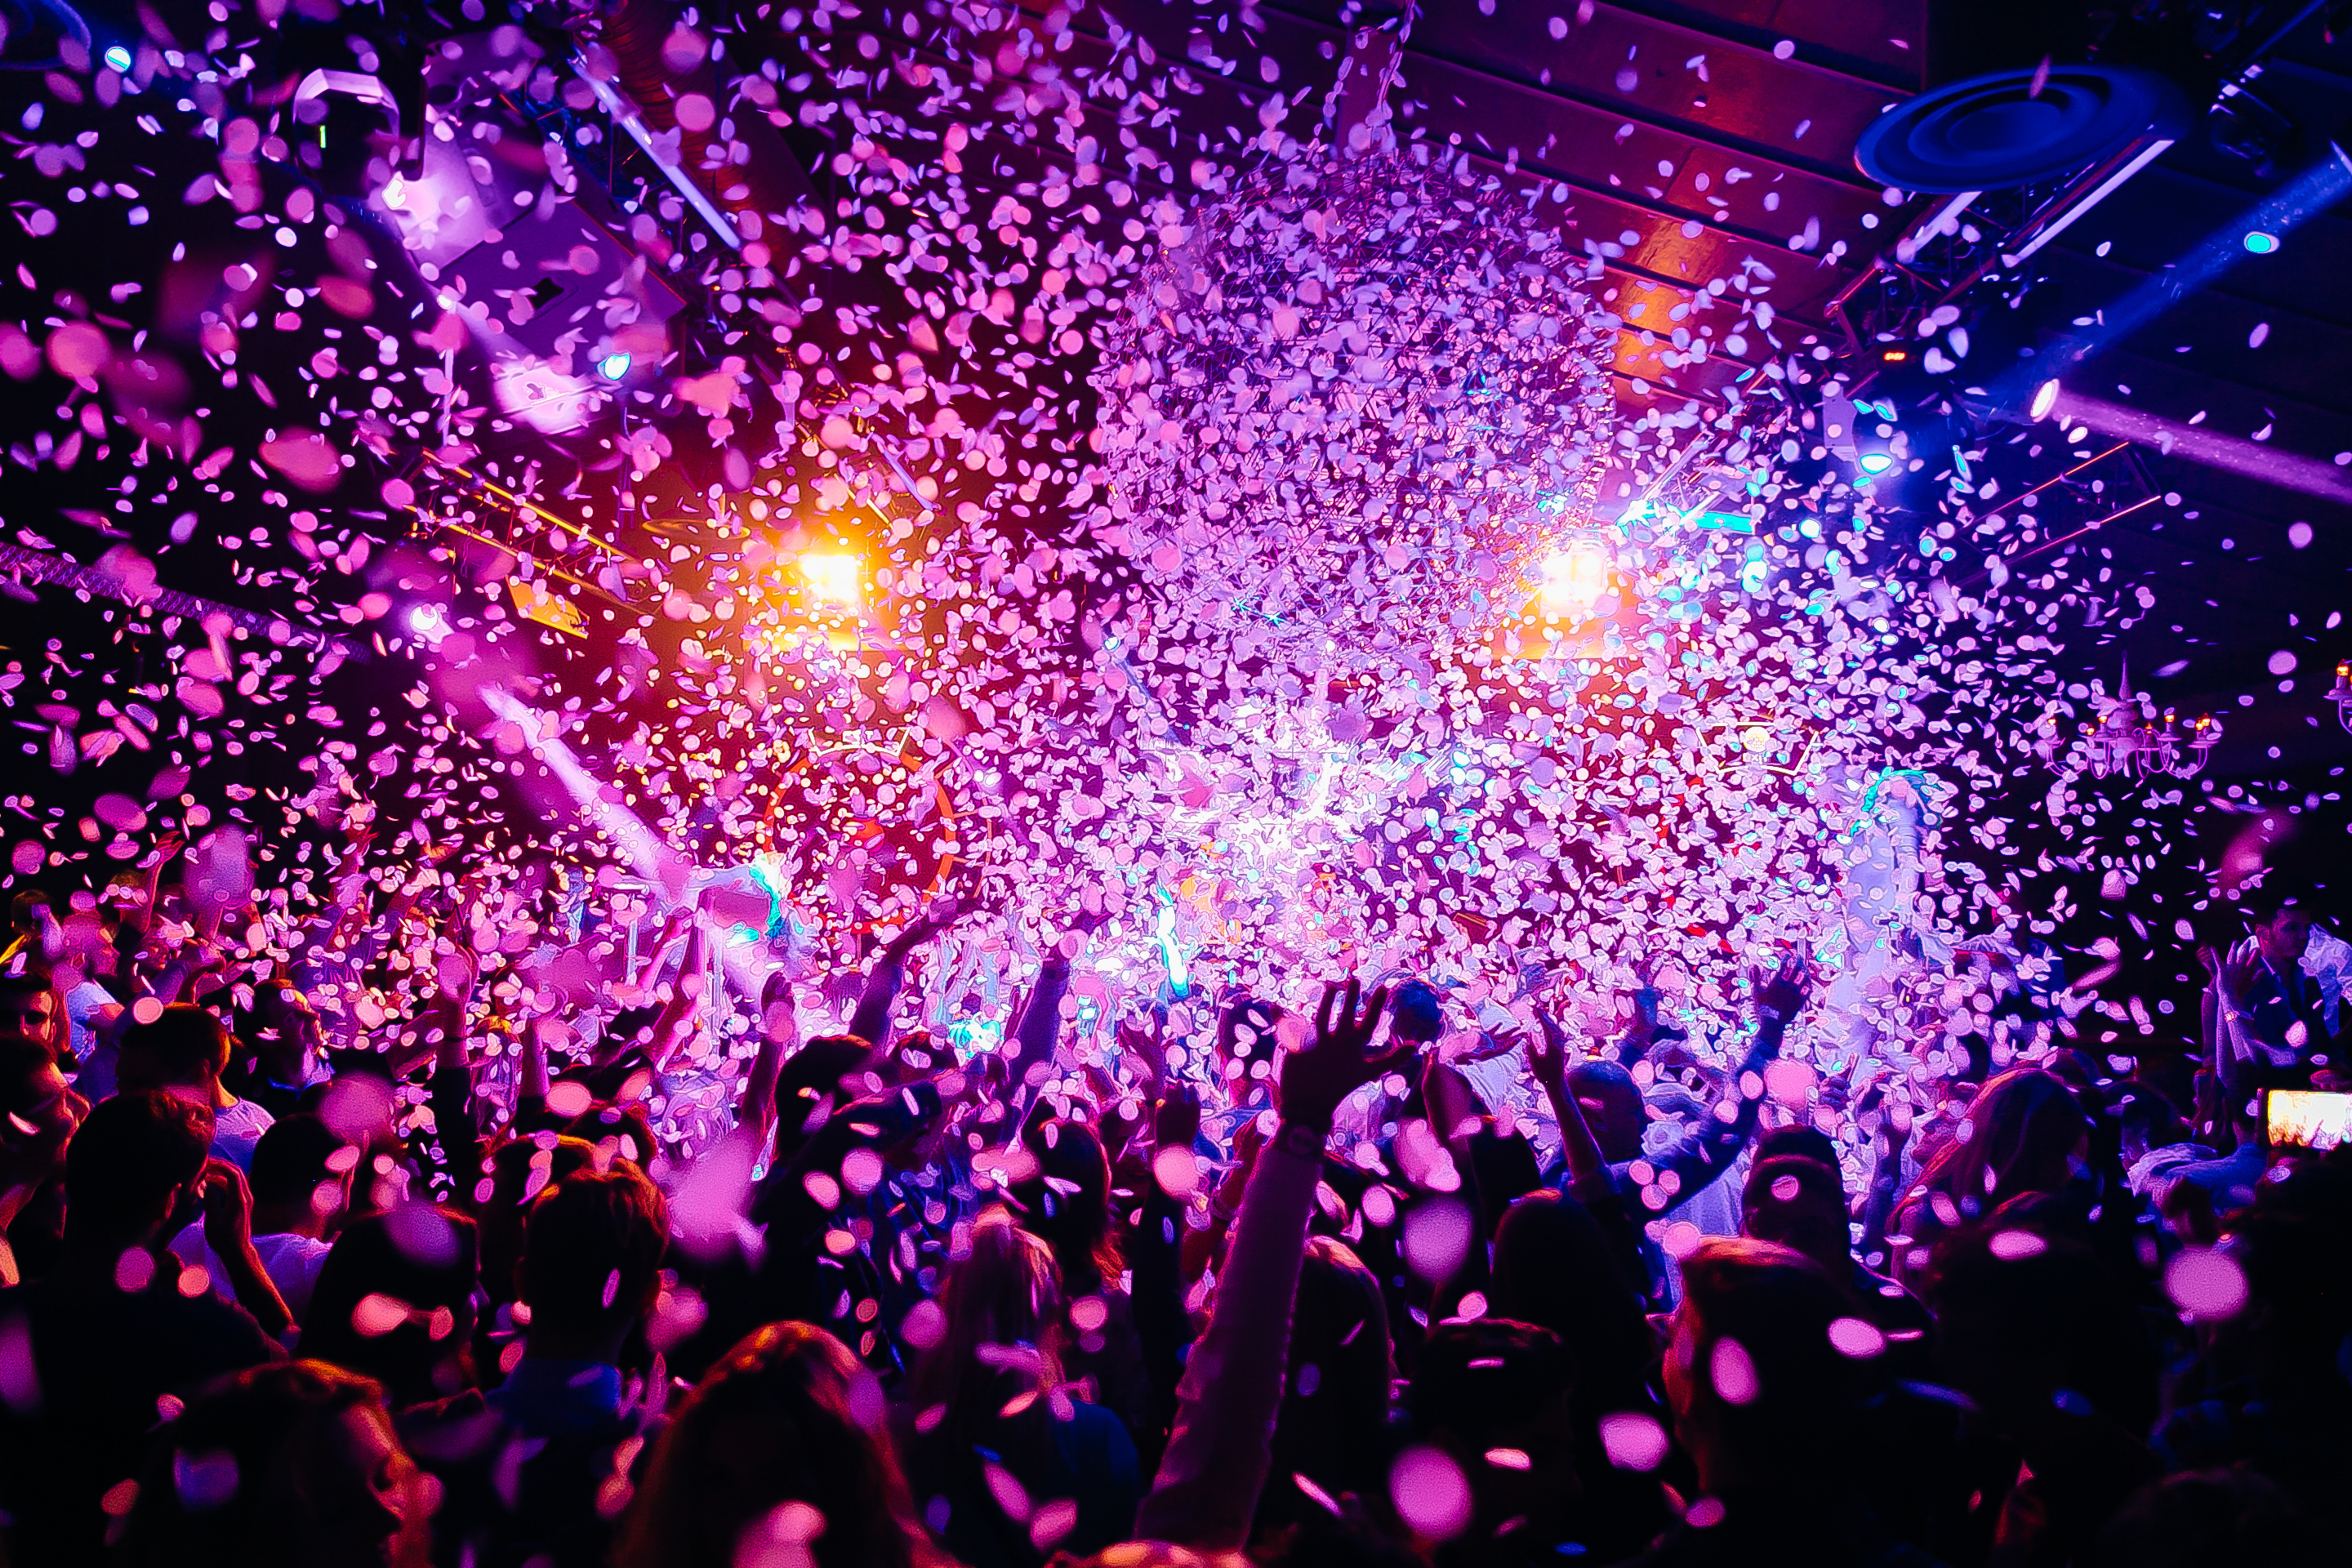 Entertainment Risk Concert crowd - picture with a lof of people dancing i a concert, night club with raised their hands up! Amazing colours!